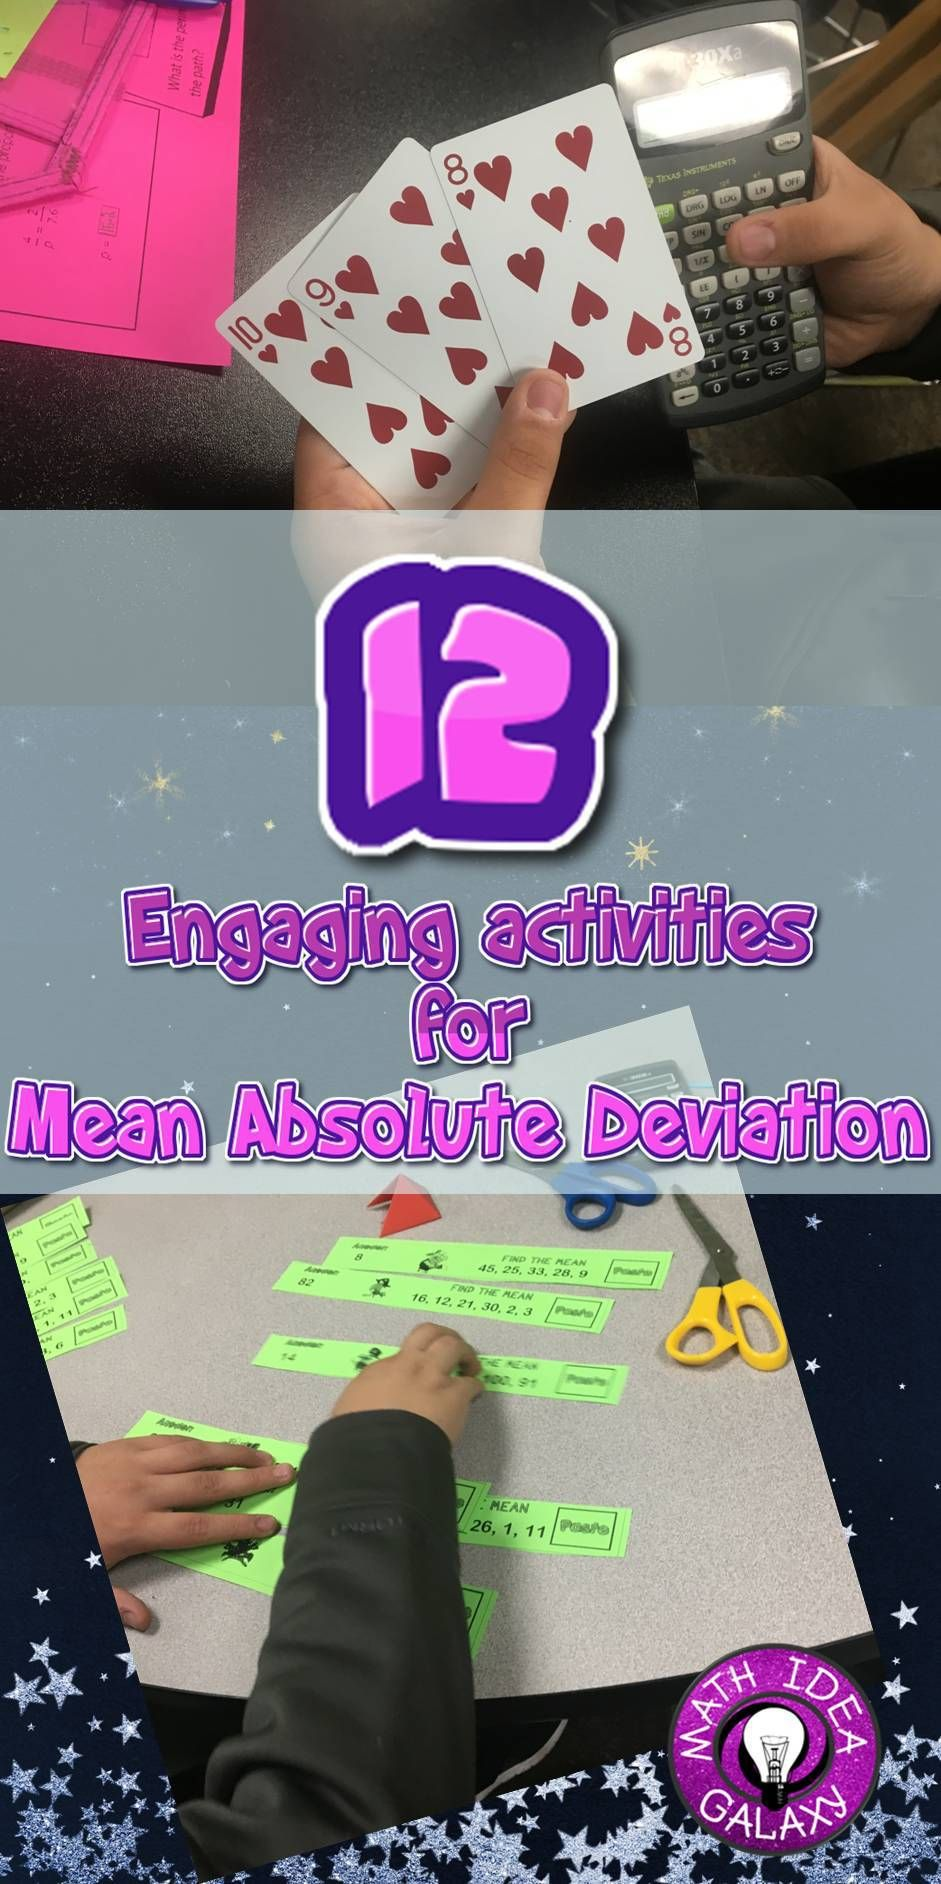 medium resolution of 12 Engaging Activities for Mean Absolute Deviation (MAD)   Learn math  online